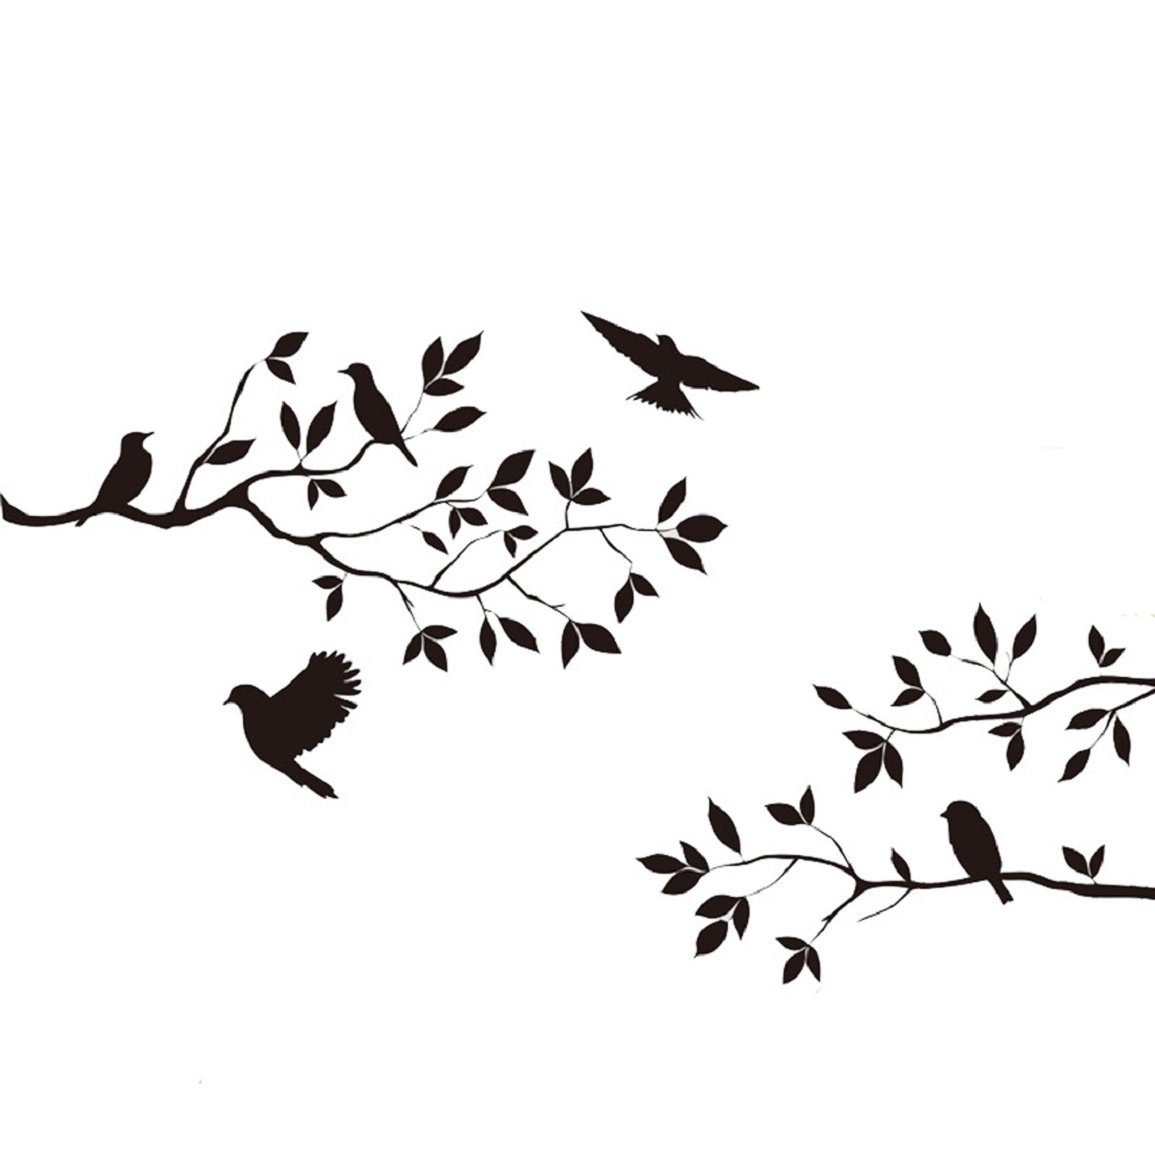 Changeshopping Tree Bird Removable Wall Sticker Vinyl Art Decal Mural Home DIY Decor changeshopping325